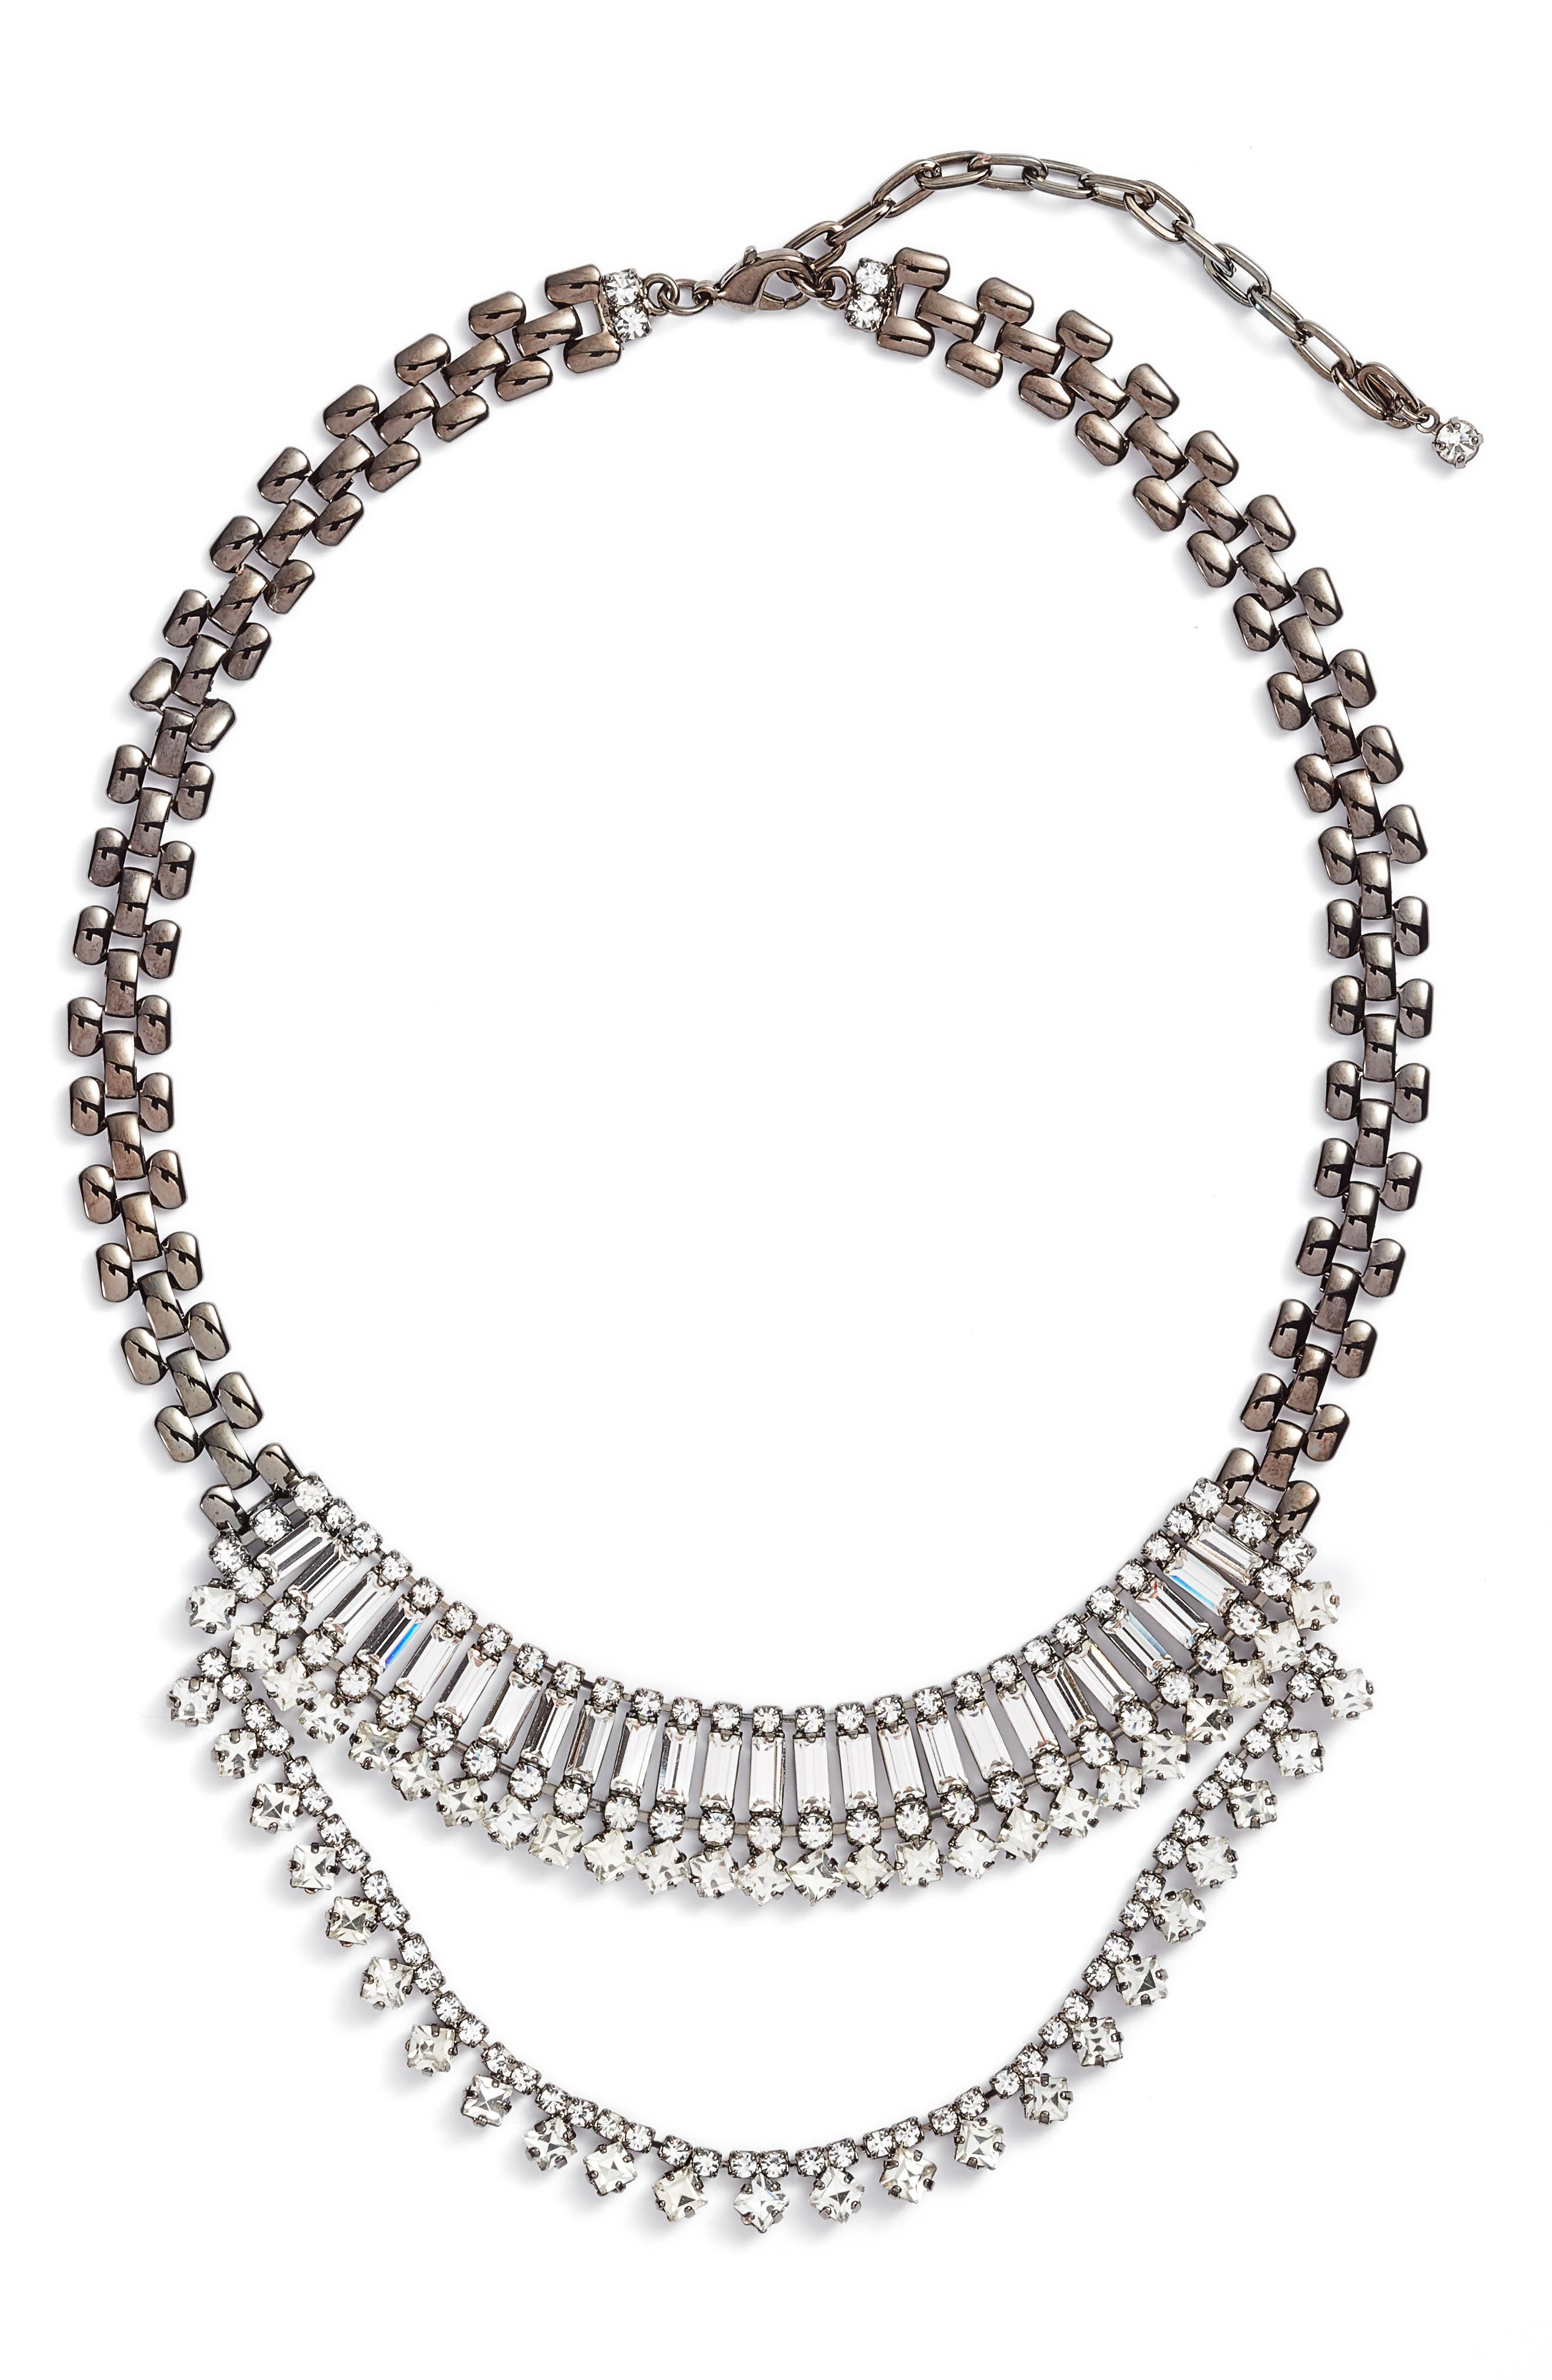 Main Image - CRISTABELLE Multistone Frontal Necklace